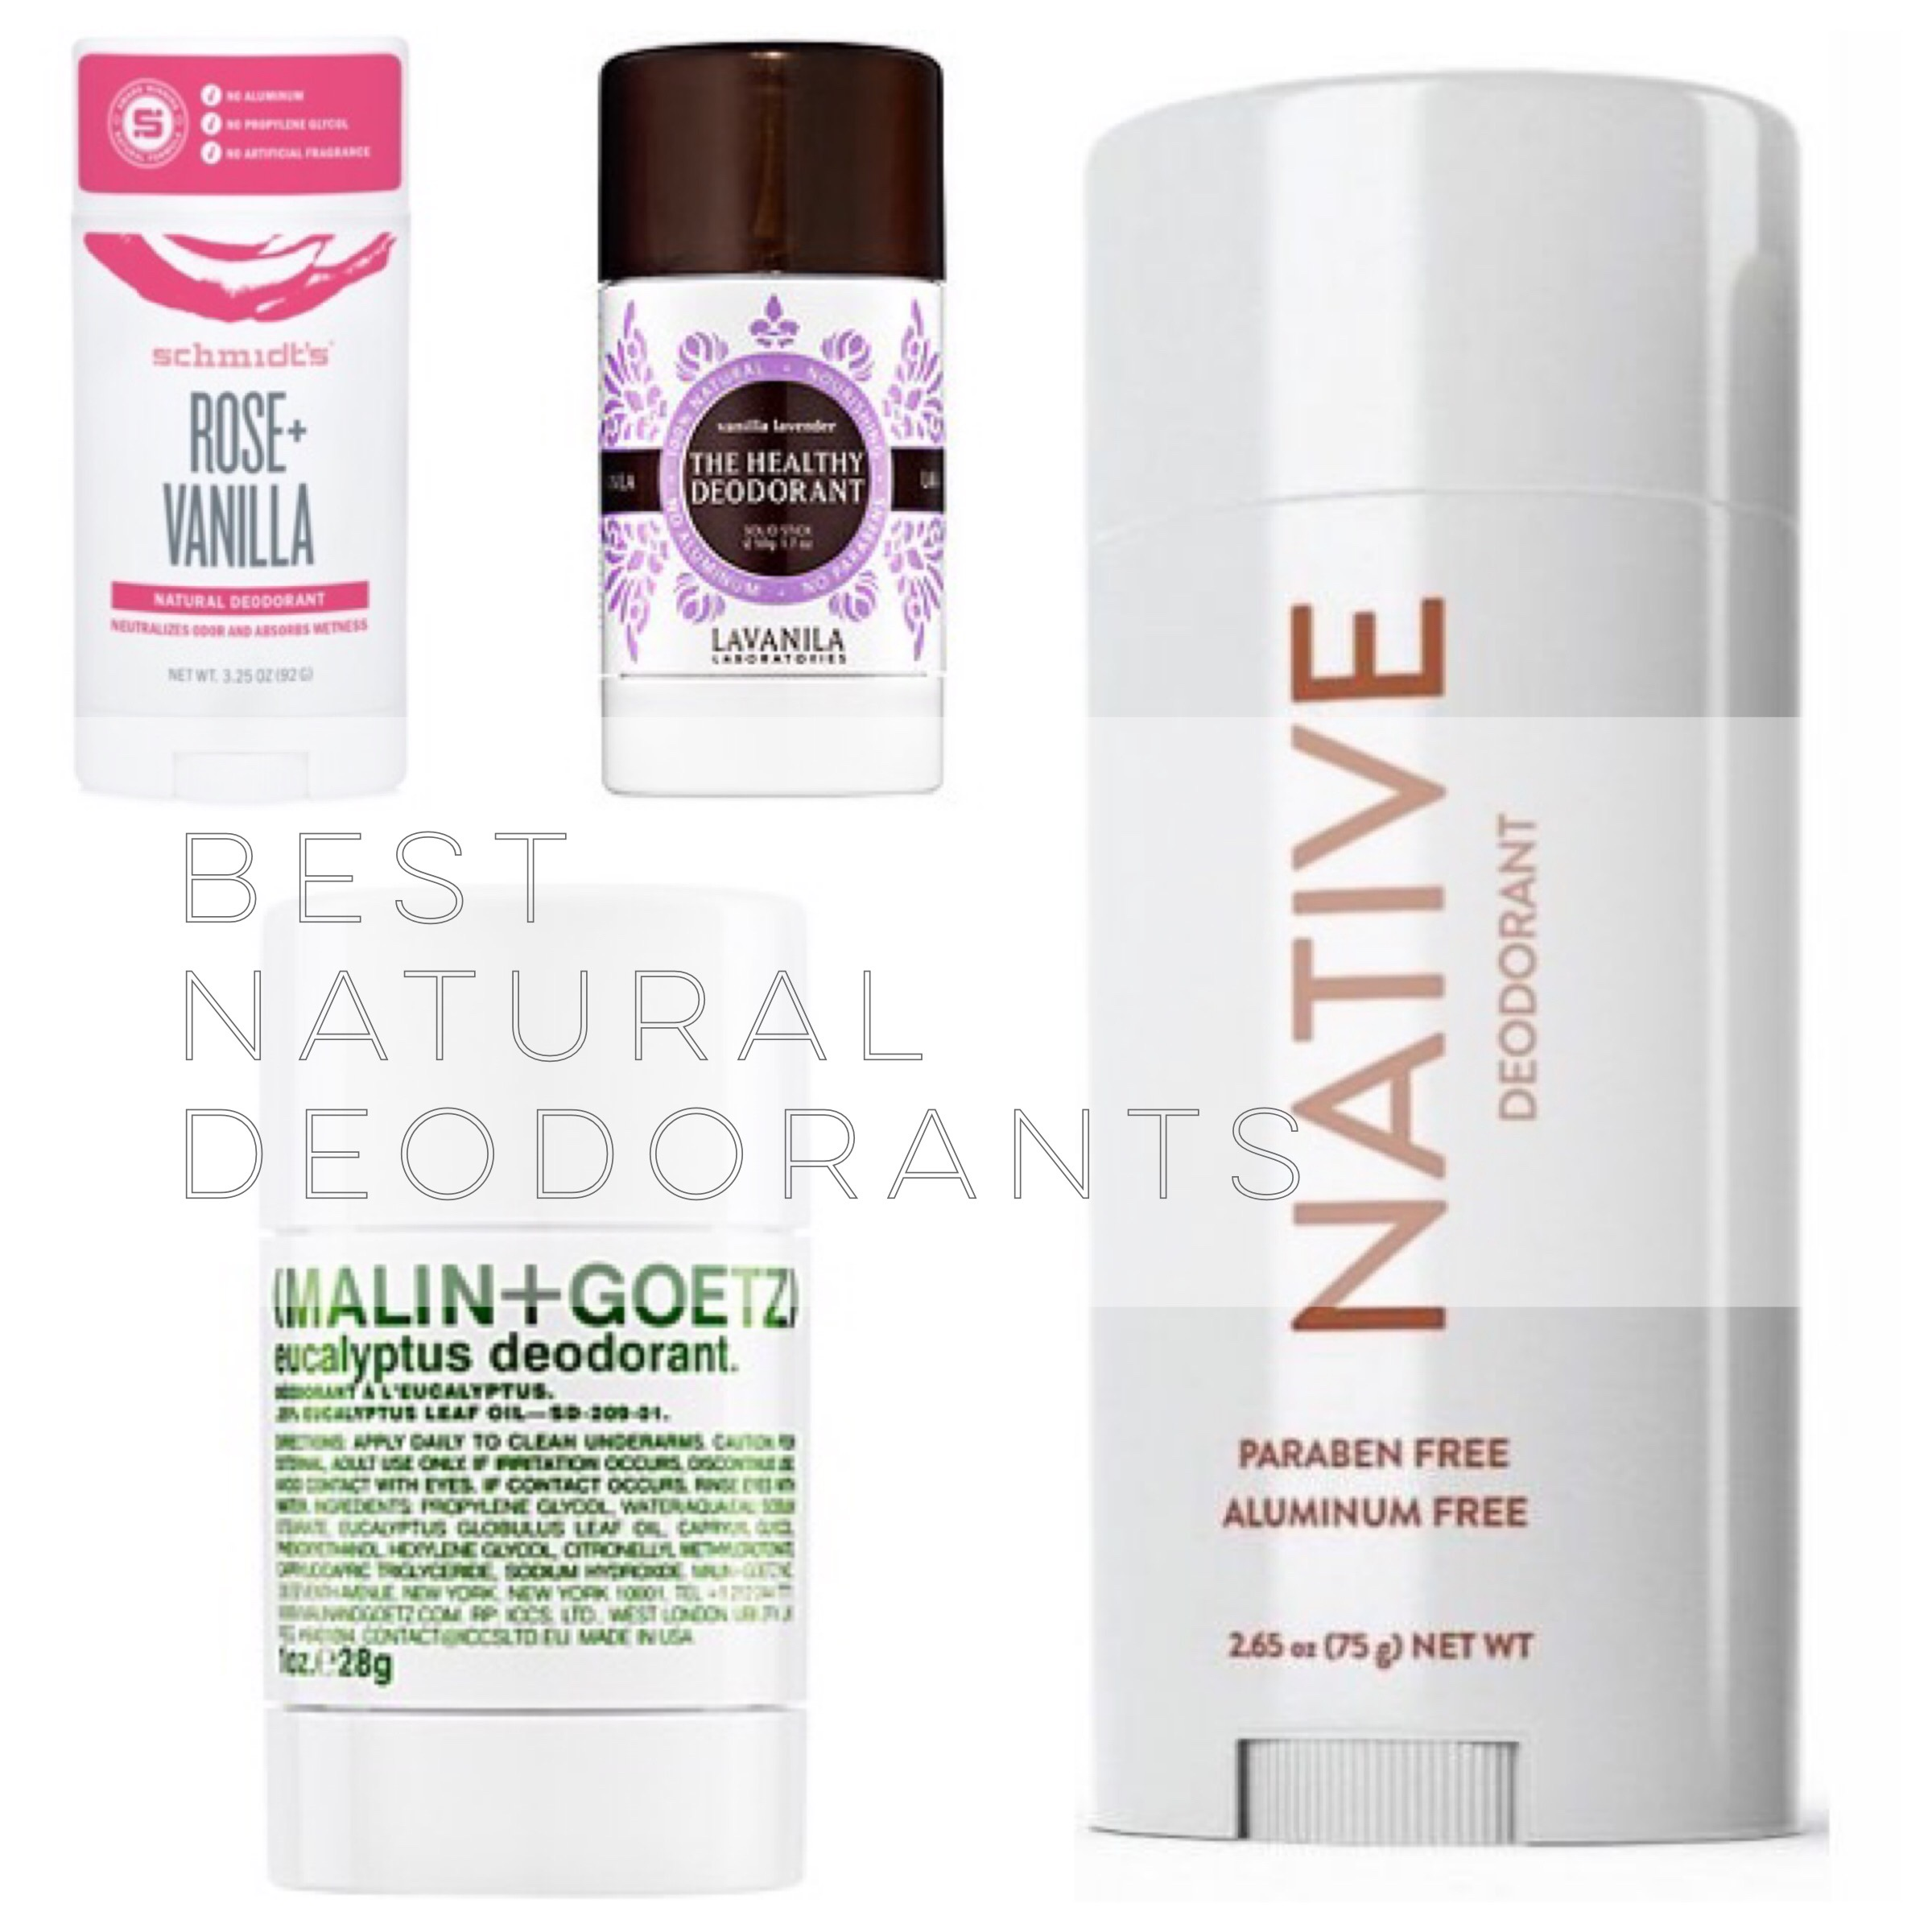 best natural deodorant what works best my journey for